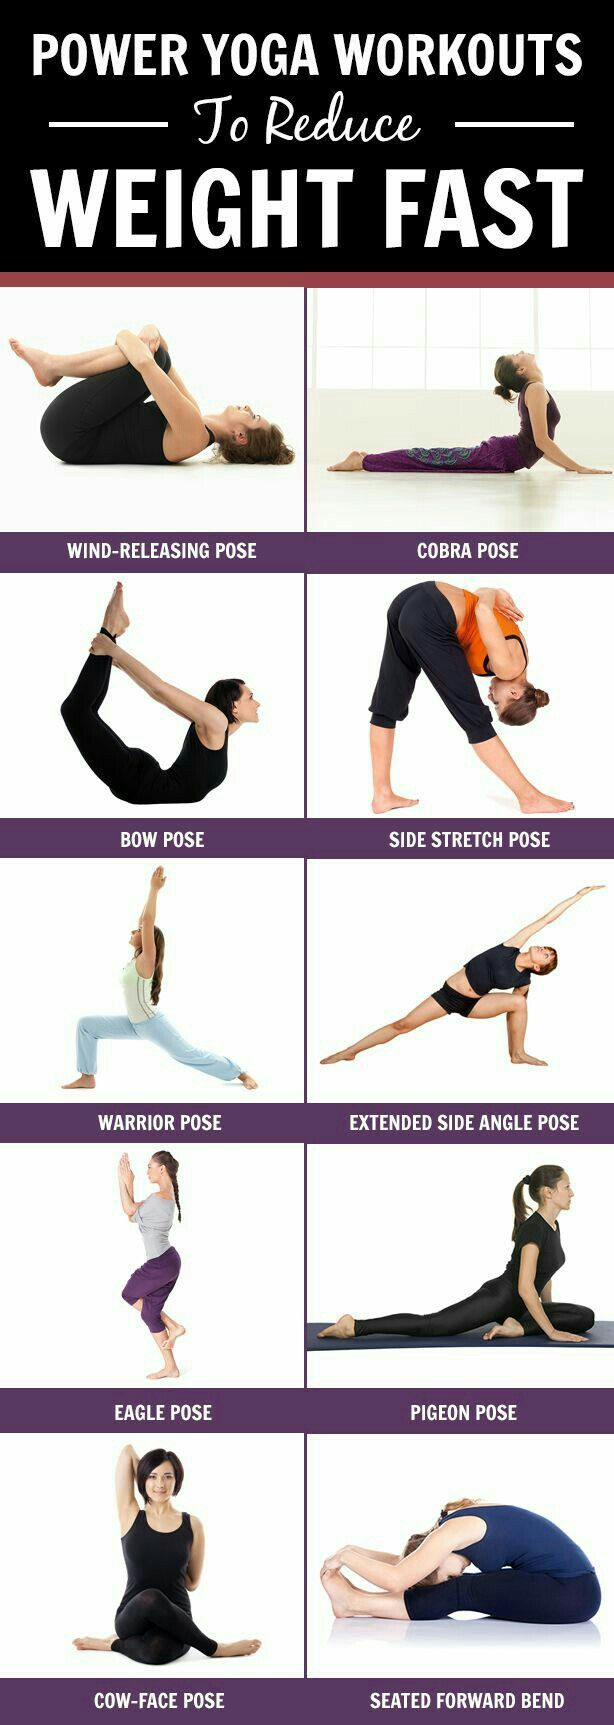 best yoga program for weight loss